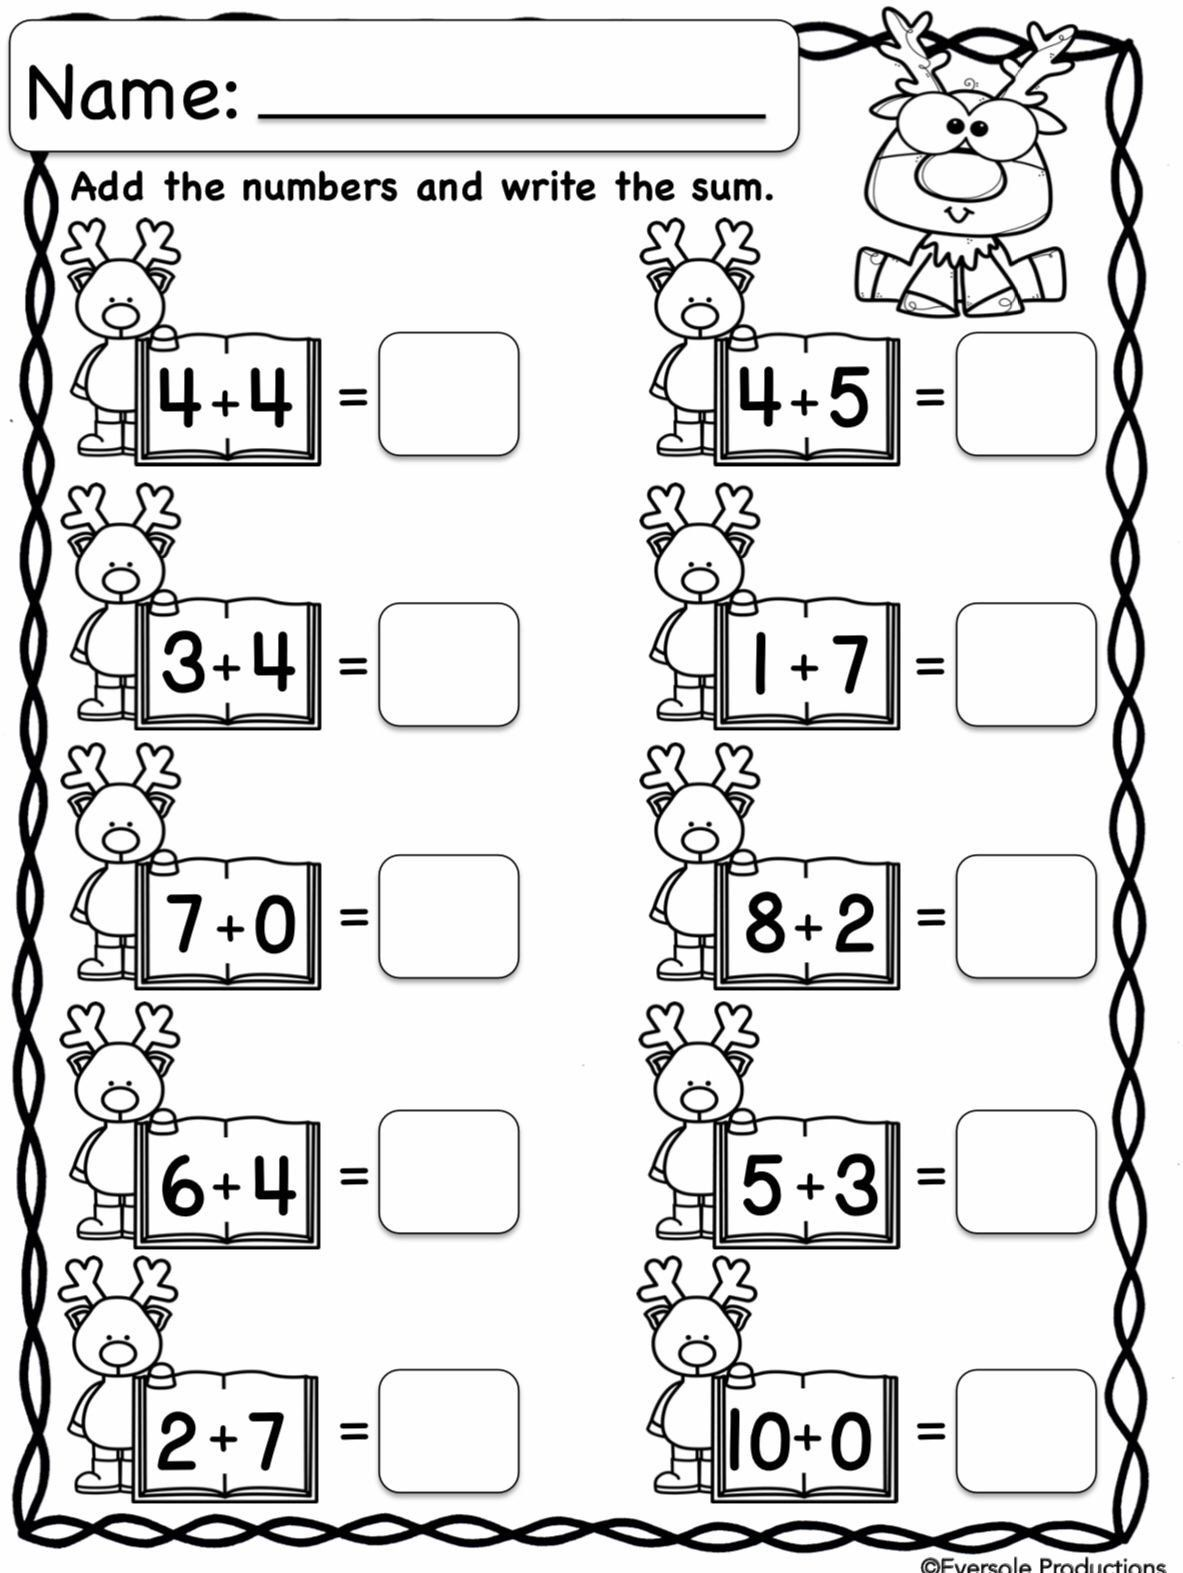 Adding And Subtracting Worksheets Kindergarten Christmas